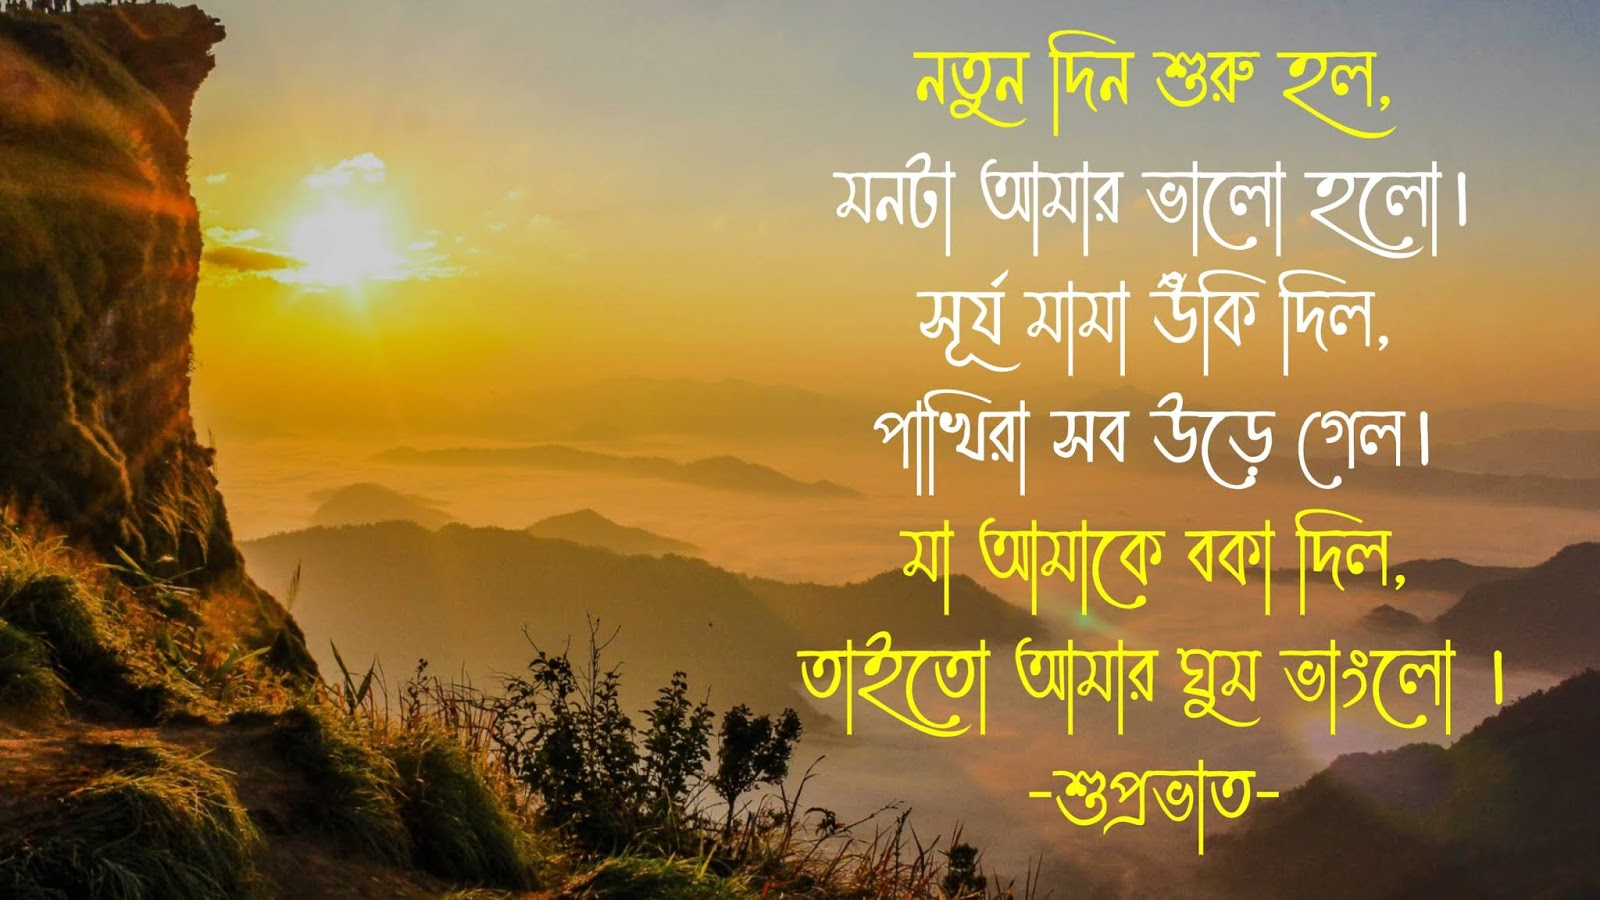 Good Morning Subho Sokal Sms in Bengali